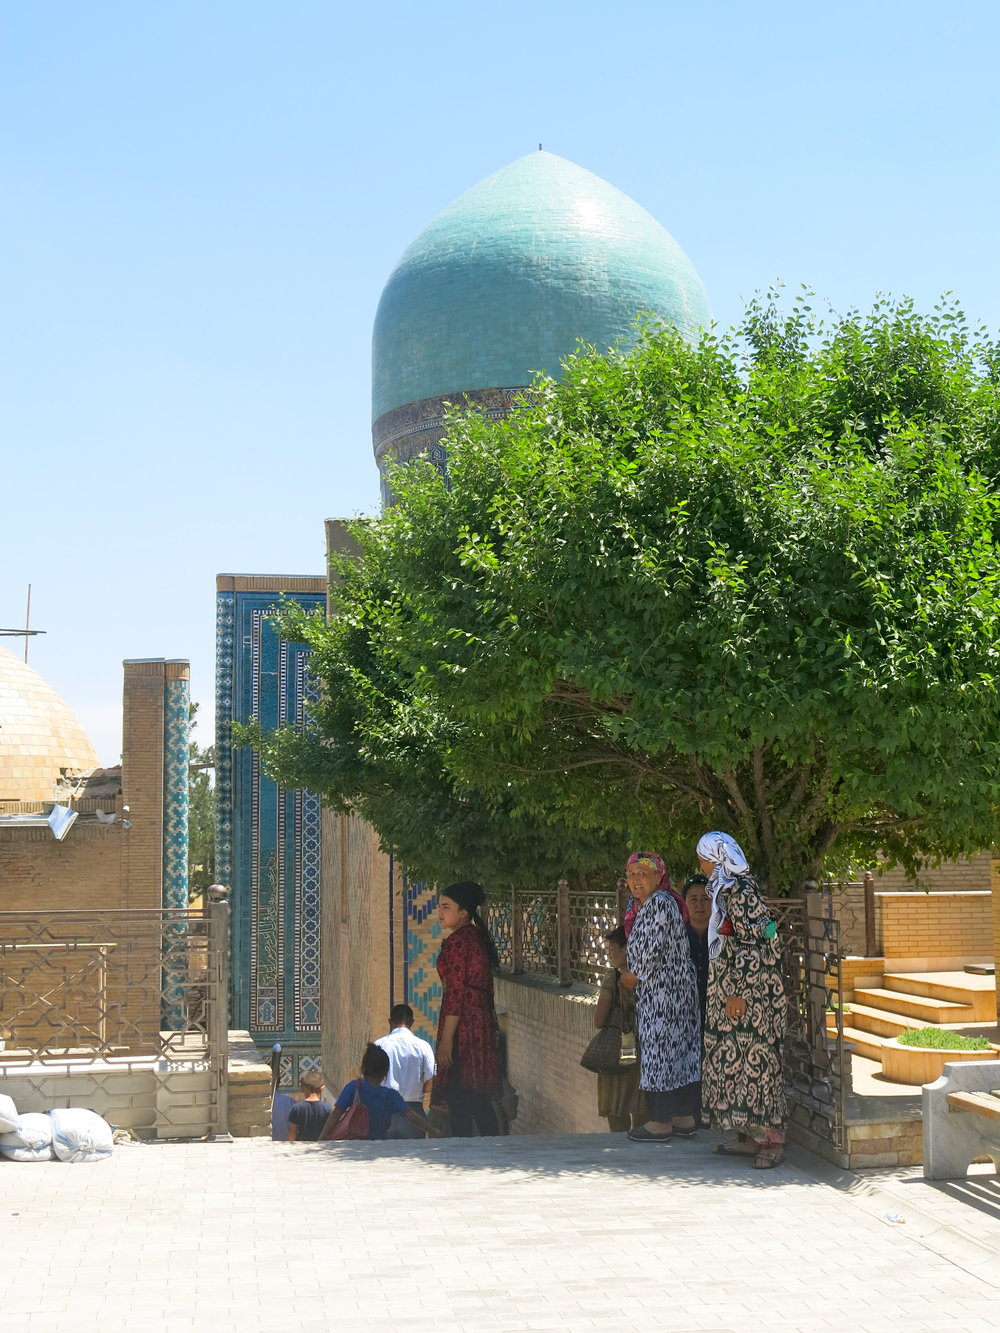 Women in traditional dresses at the Shah-i-Zinda mausoleums